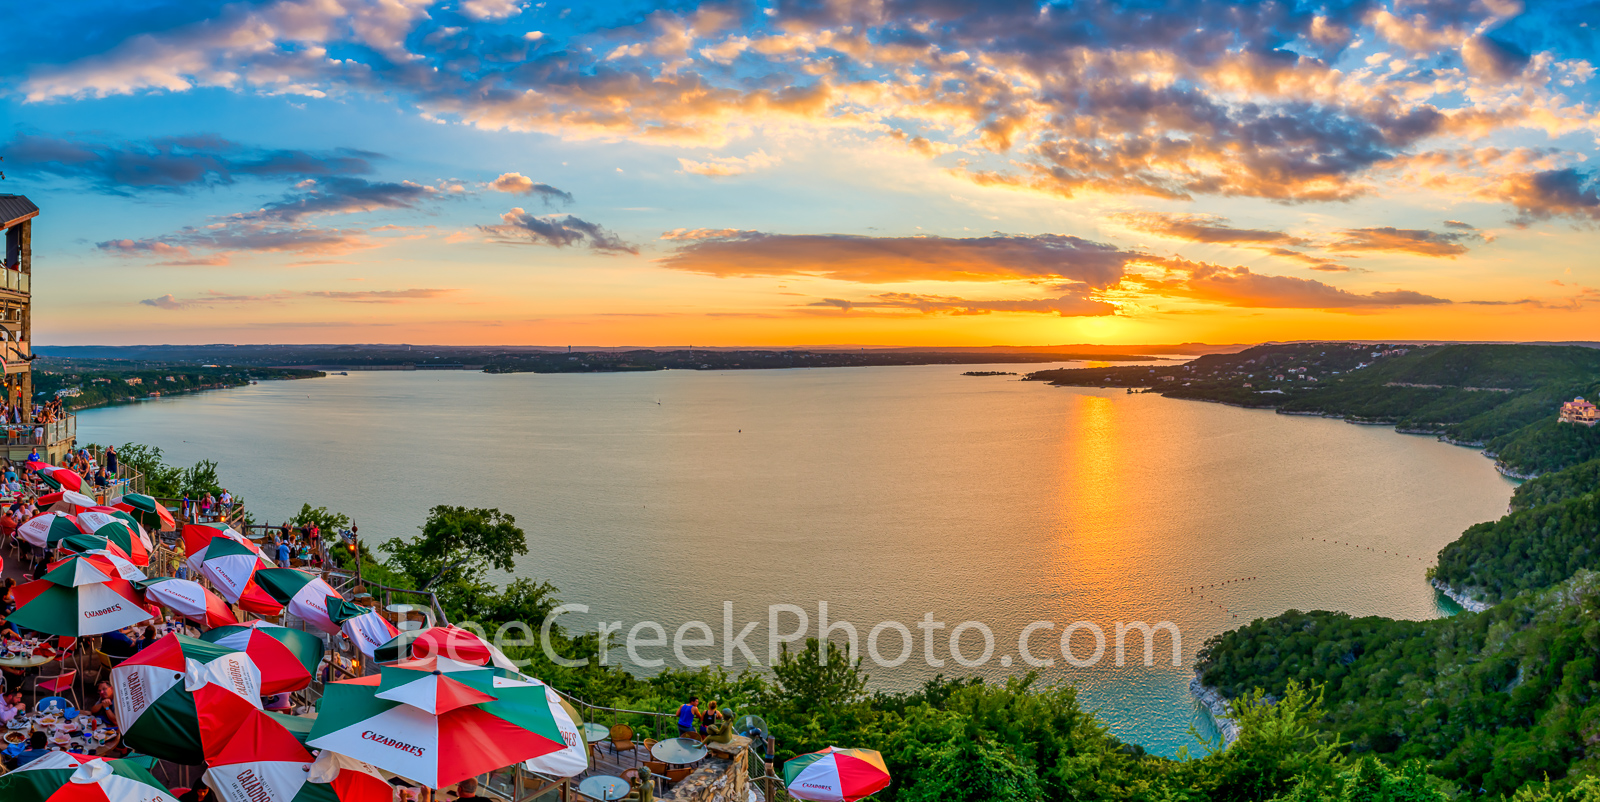 Oasis Sunset Pano 2. One more image of this wonderful sunset at the Oasis on Lake Travis.  Lake Travis is outside of Austin...